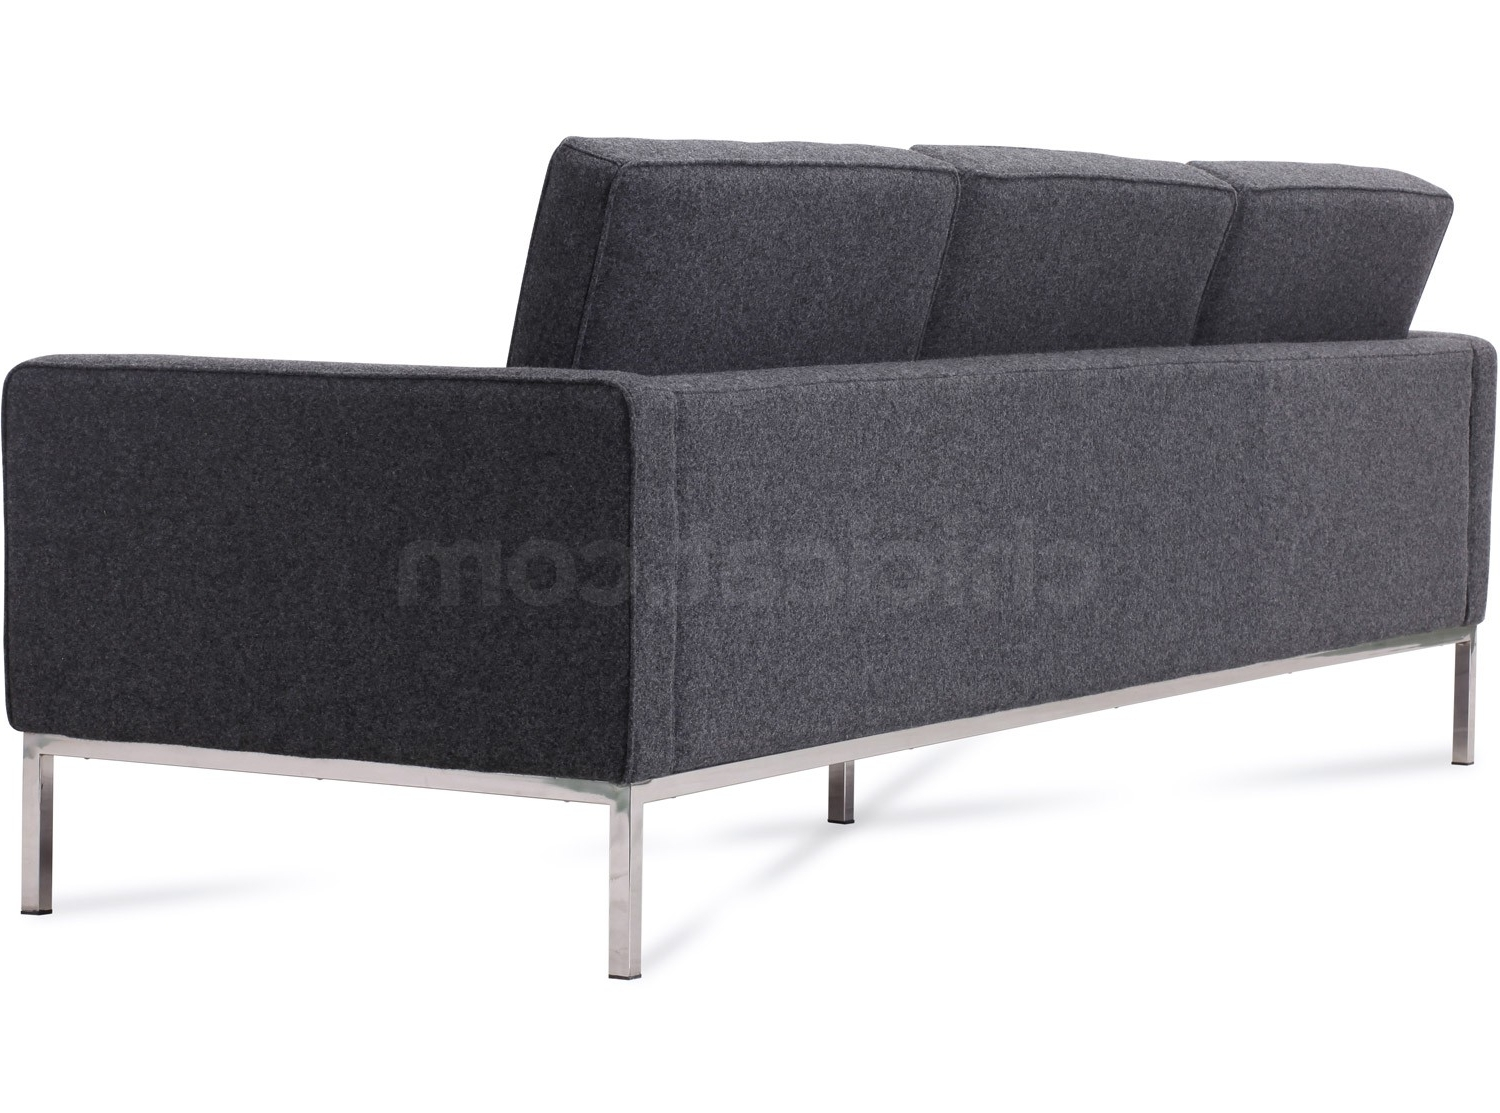 Florence Knoll Sofa 3 Seater Wool (Platinum Replica) Throughout Trendy Florence Knoll 3 Seater Sofas (View 8 of 15)